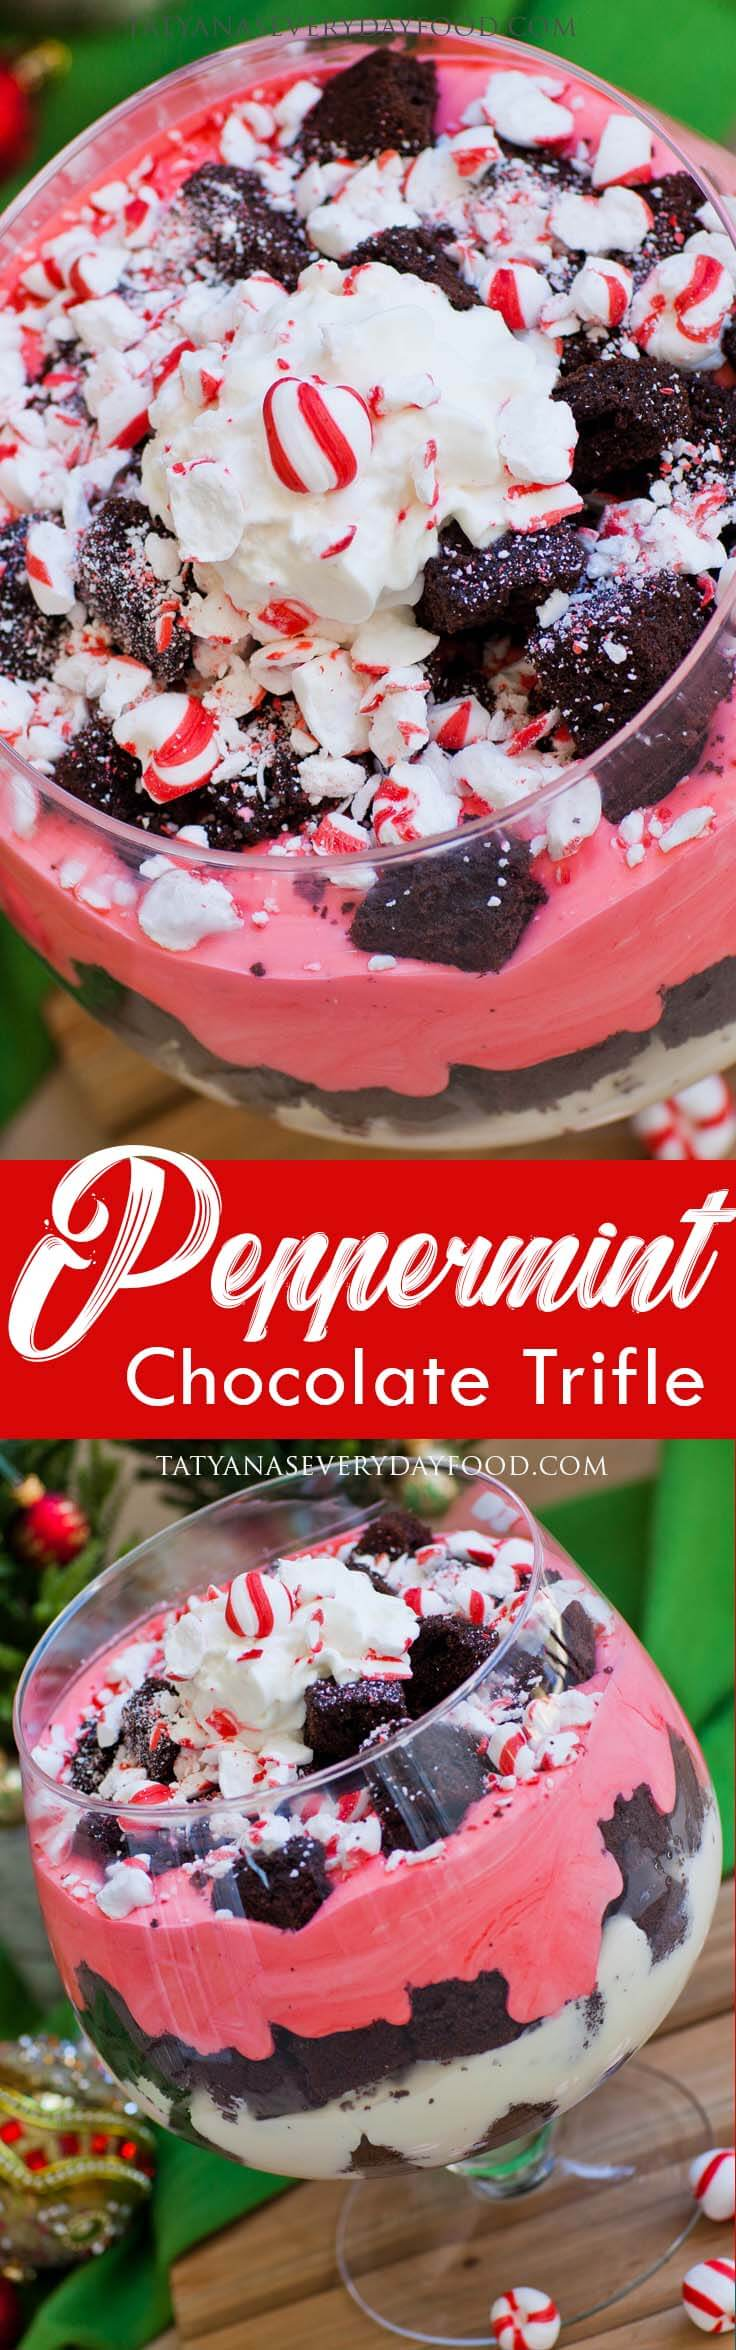 Peppermint Chocolate Trifle for Christmas